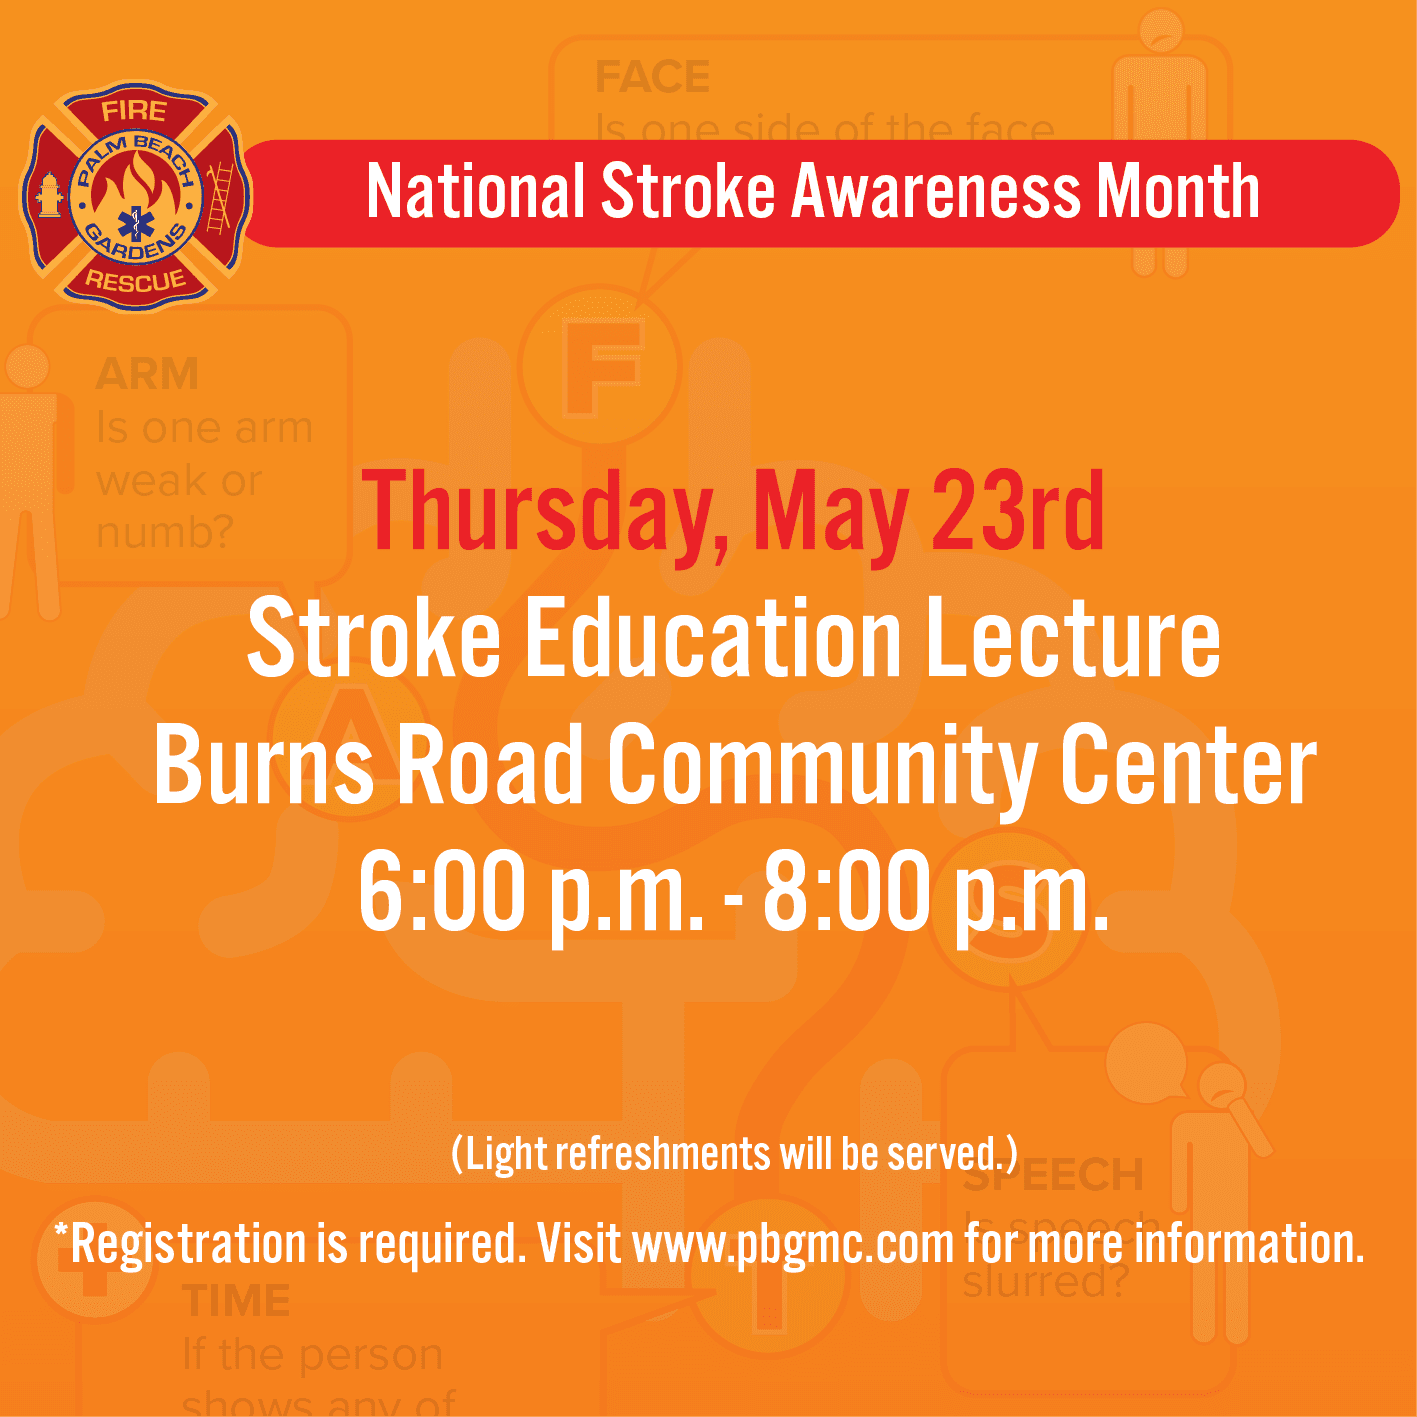 Thursday, May 23rd free Stroke Education Lecture at Burns Road Community Center, 6-8 p.m. Registrati